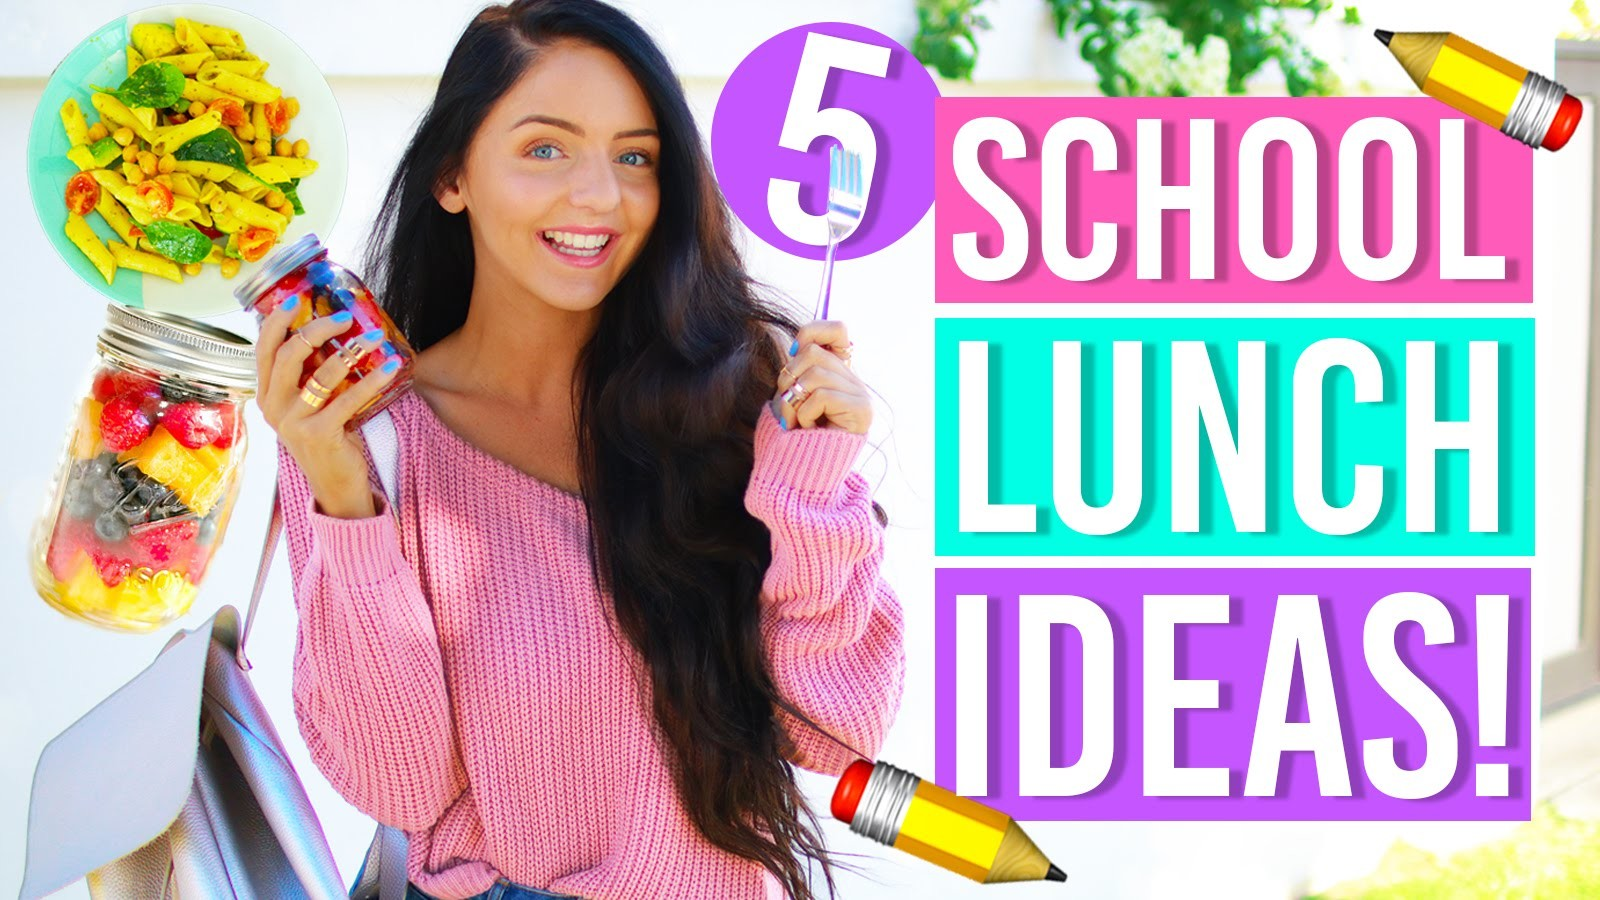 A Week of Healthy Lunch Ideas for Back to School! DIY LUNCHES AND SNACKS FOR SCHOOL!